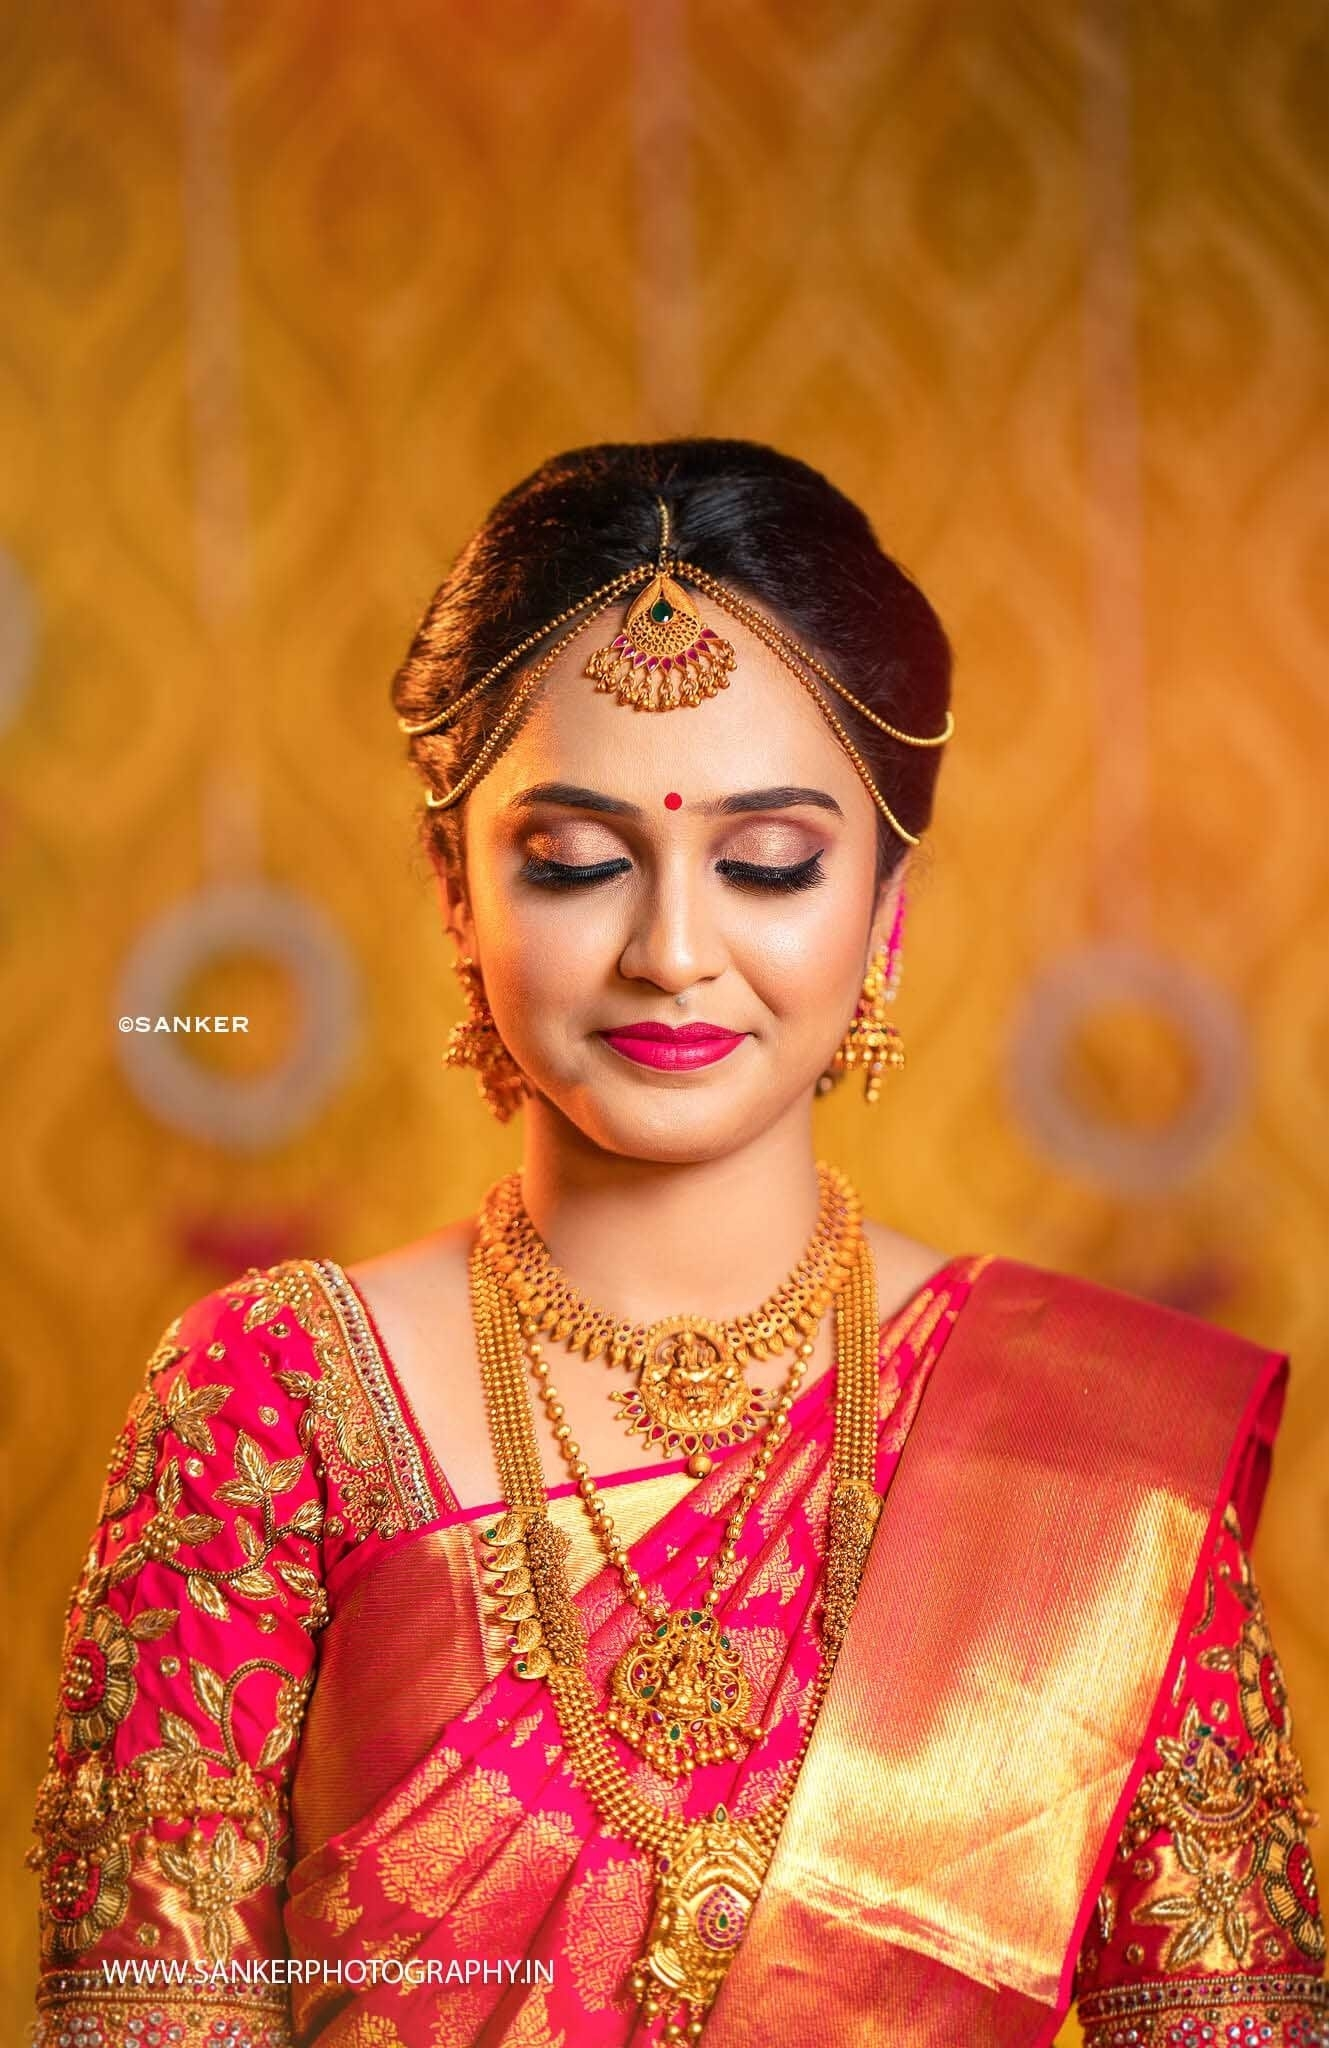 An Artfully Shot Wedding That We All Need To Check Out pertaining to Malaysian Indian Bridal Makeup Pictures